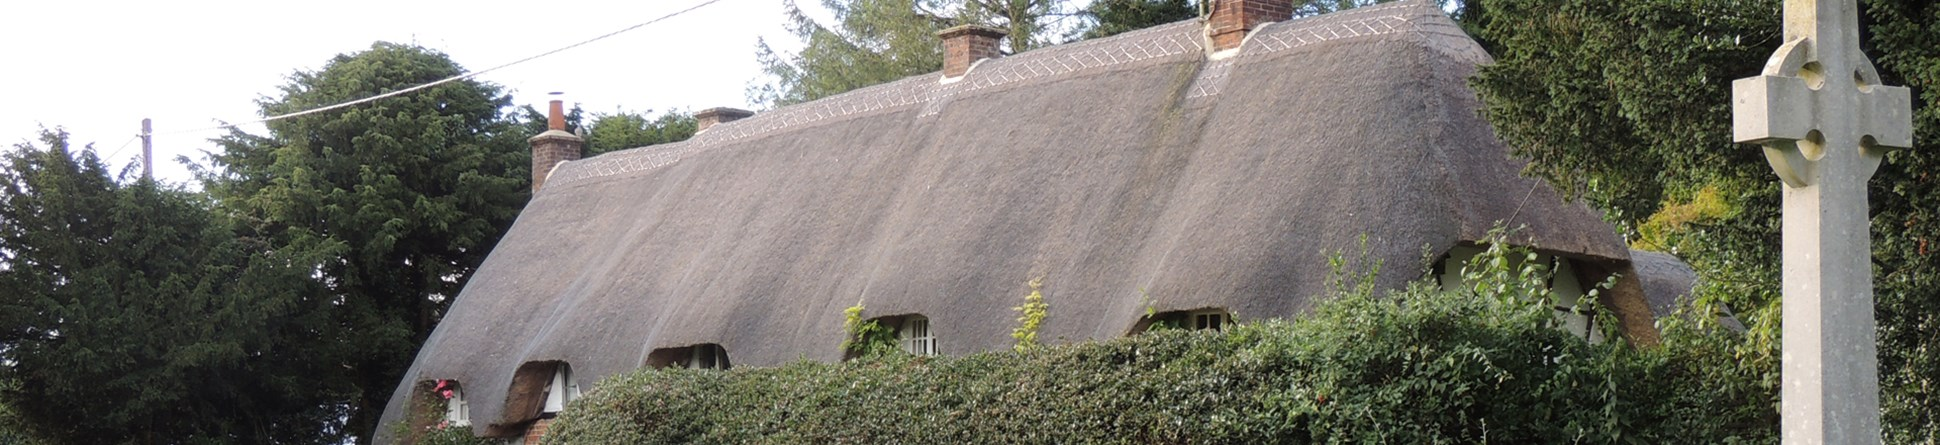 An image of a thatched roof